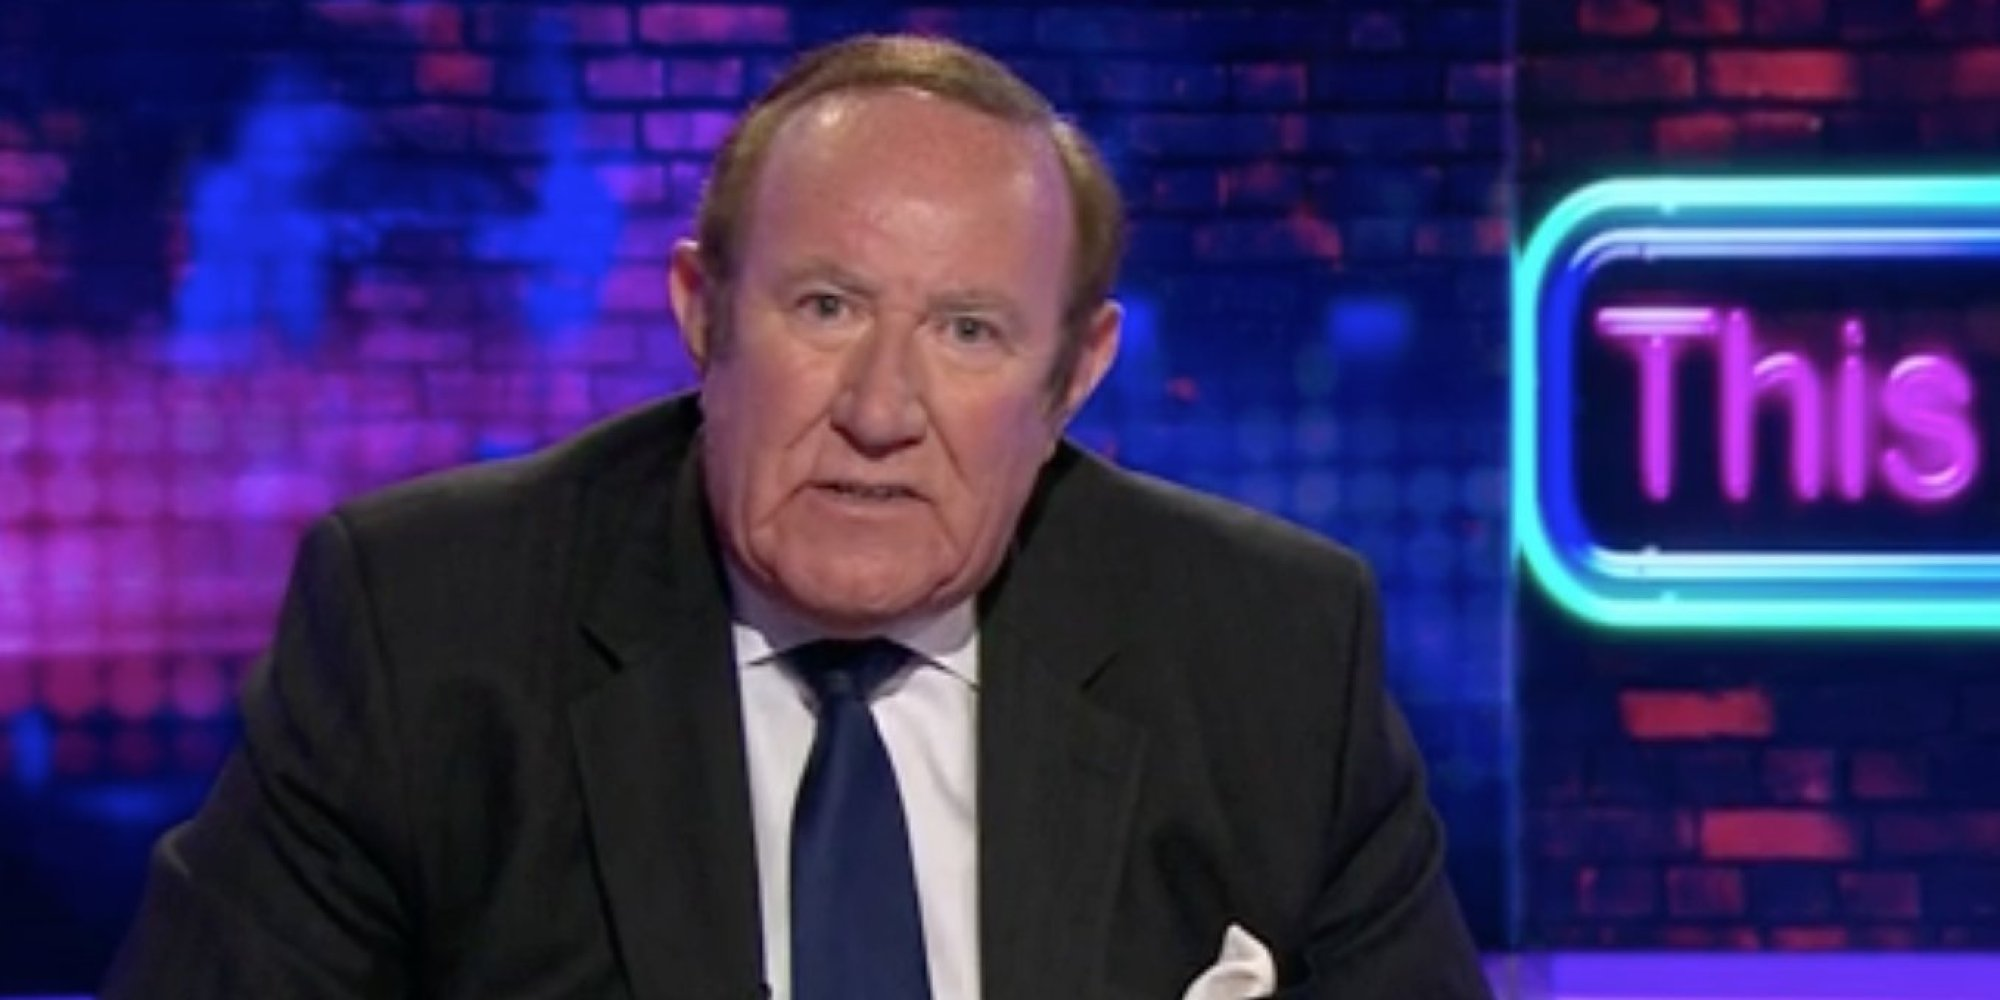 andrew neil - photo #37